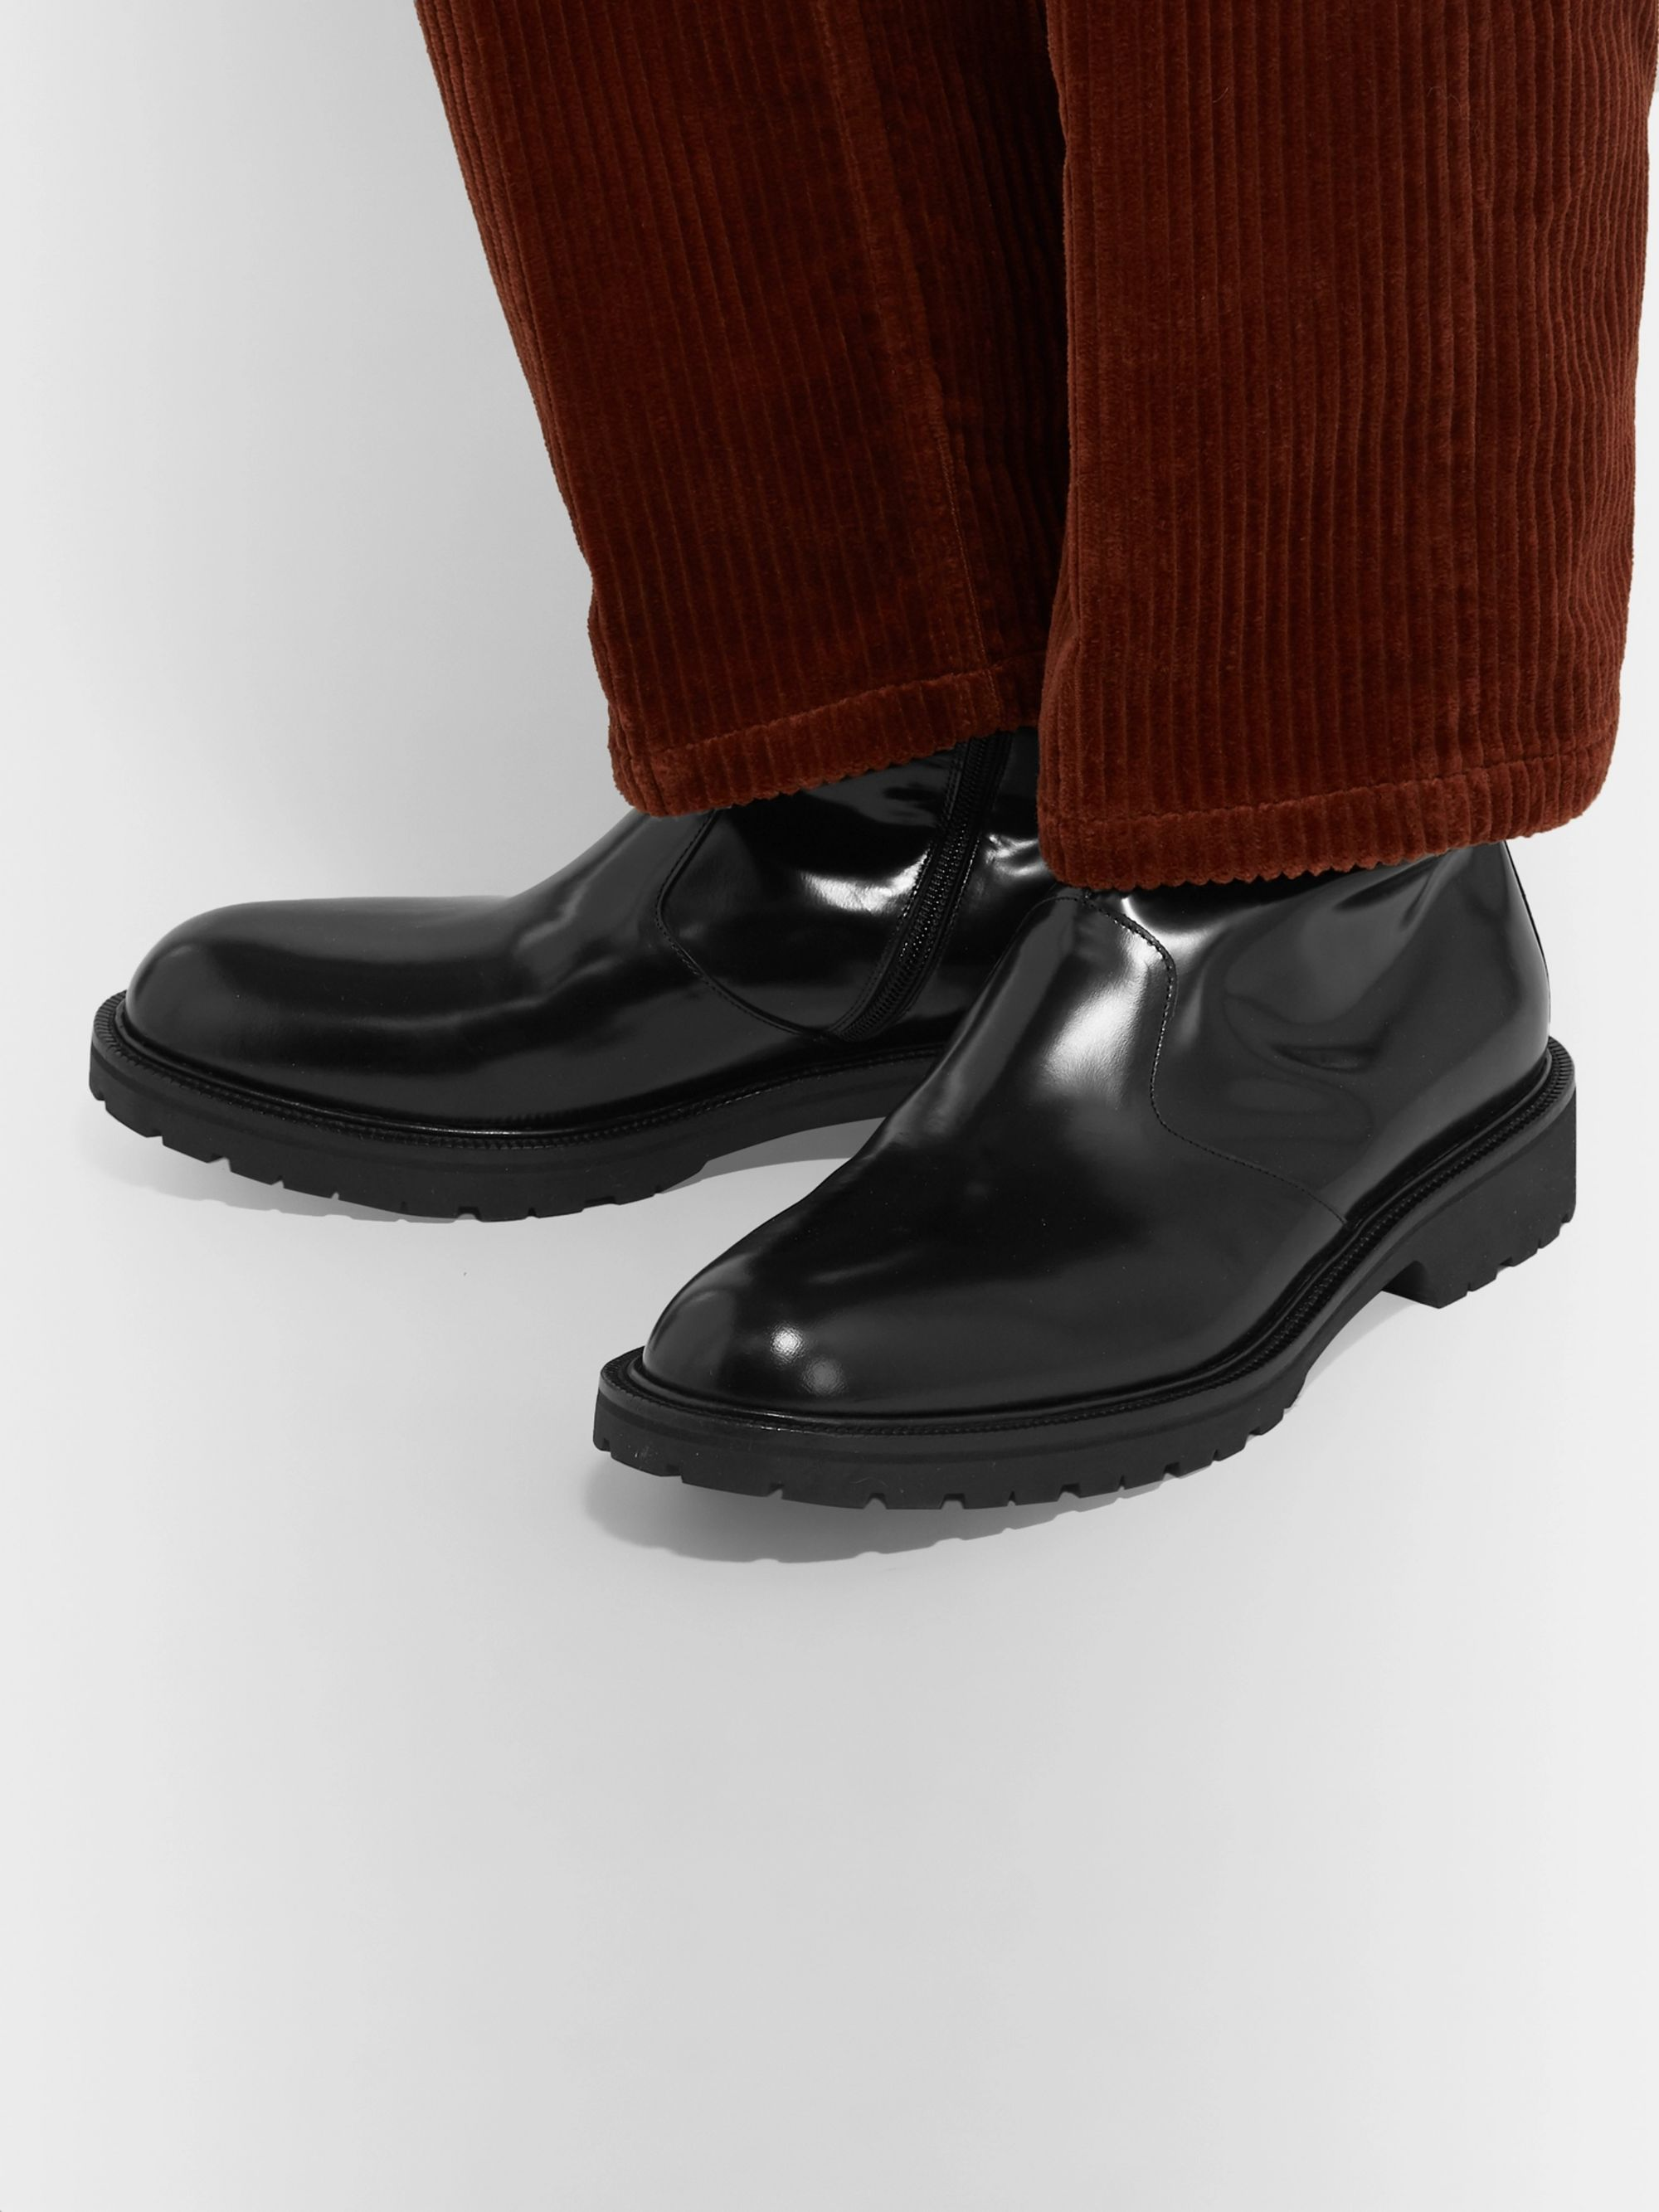 Dries Van Noten Polished-Leather Boots